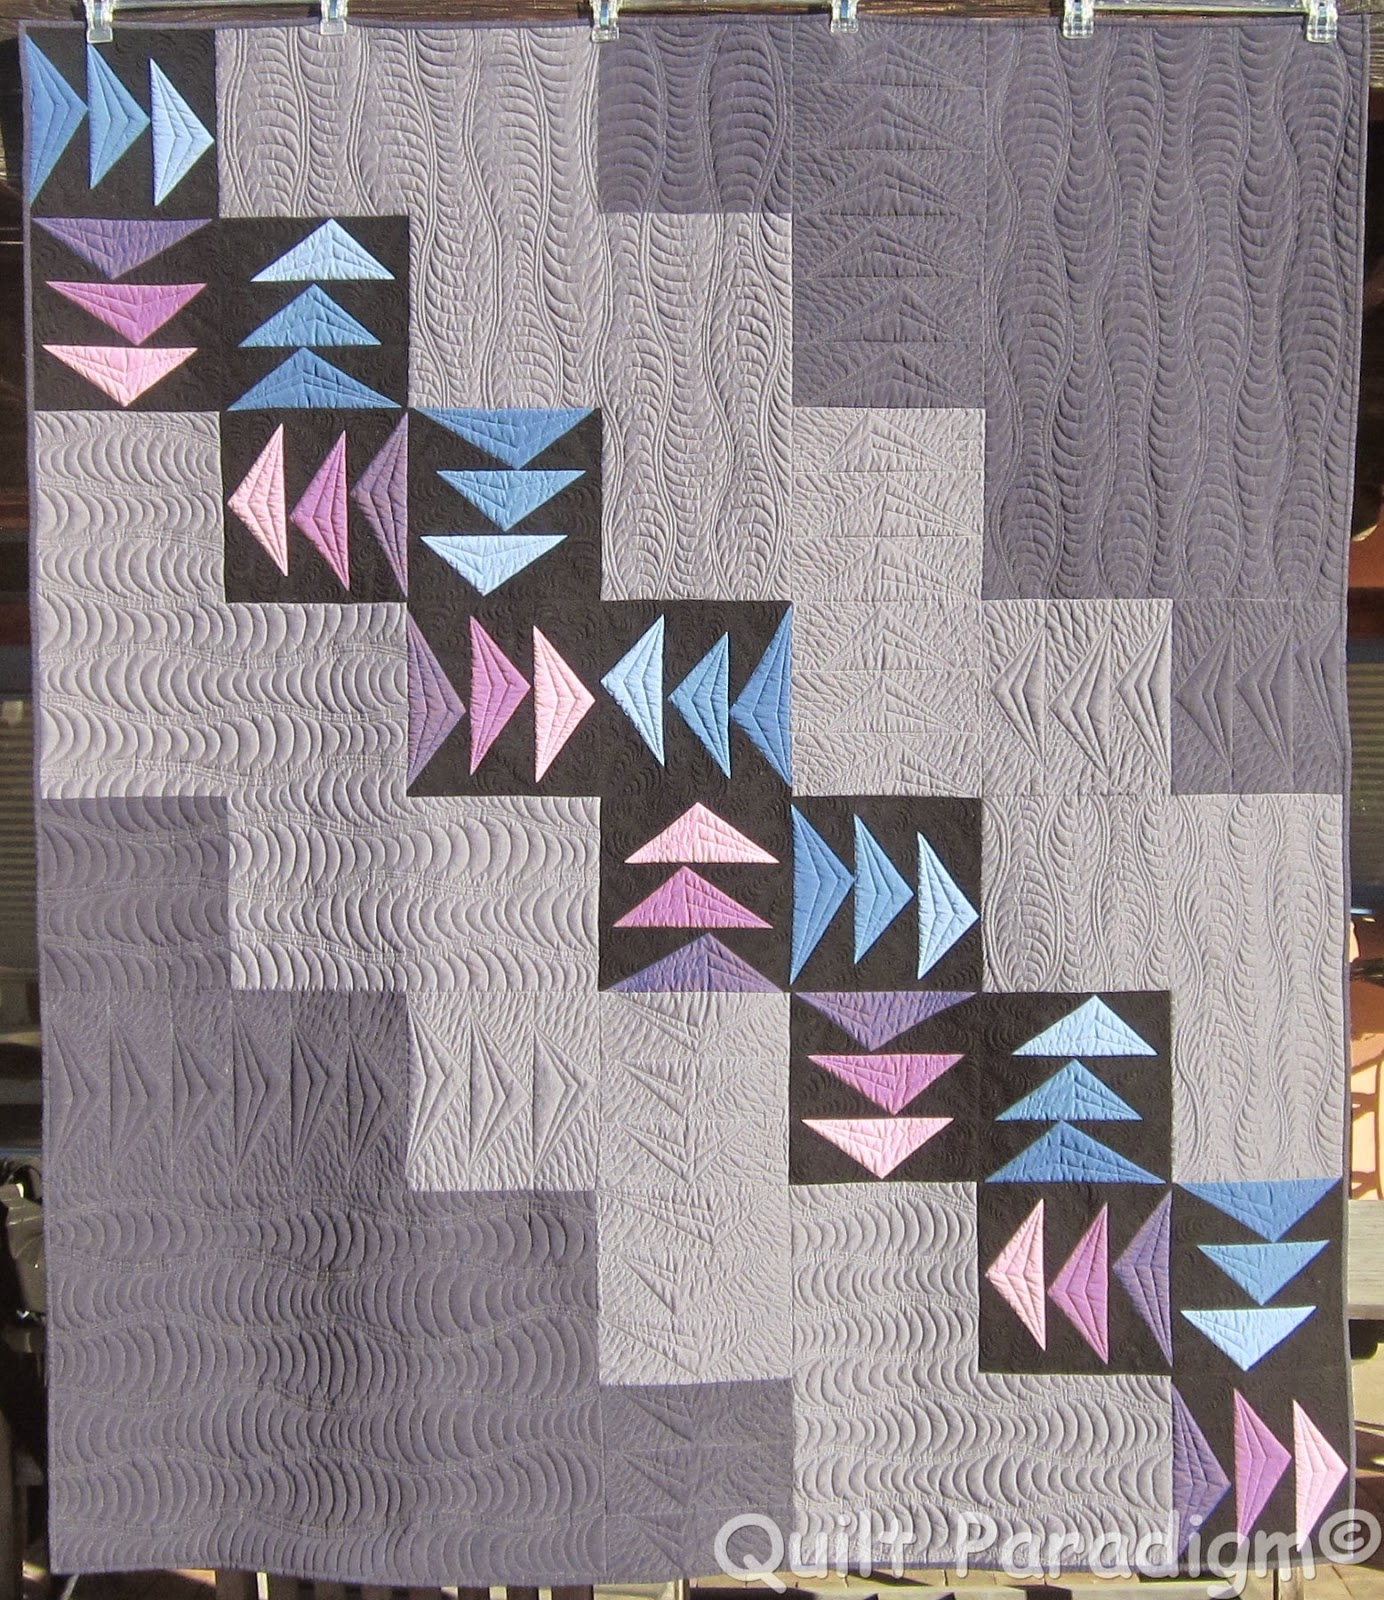 http://quiltparadigm.blogspot.com/2014/11/off-course-done-and-dusted.html